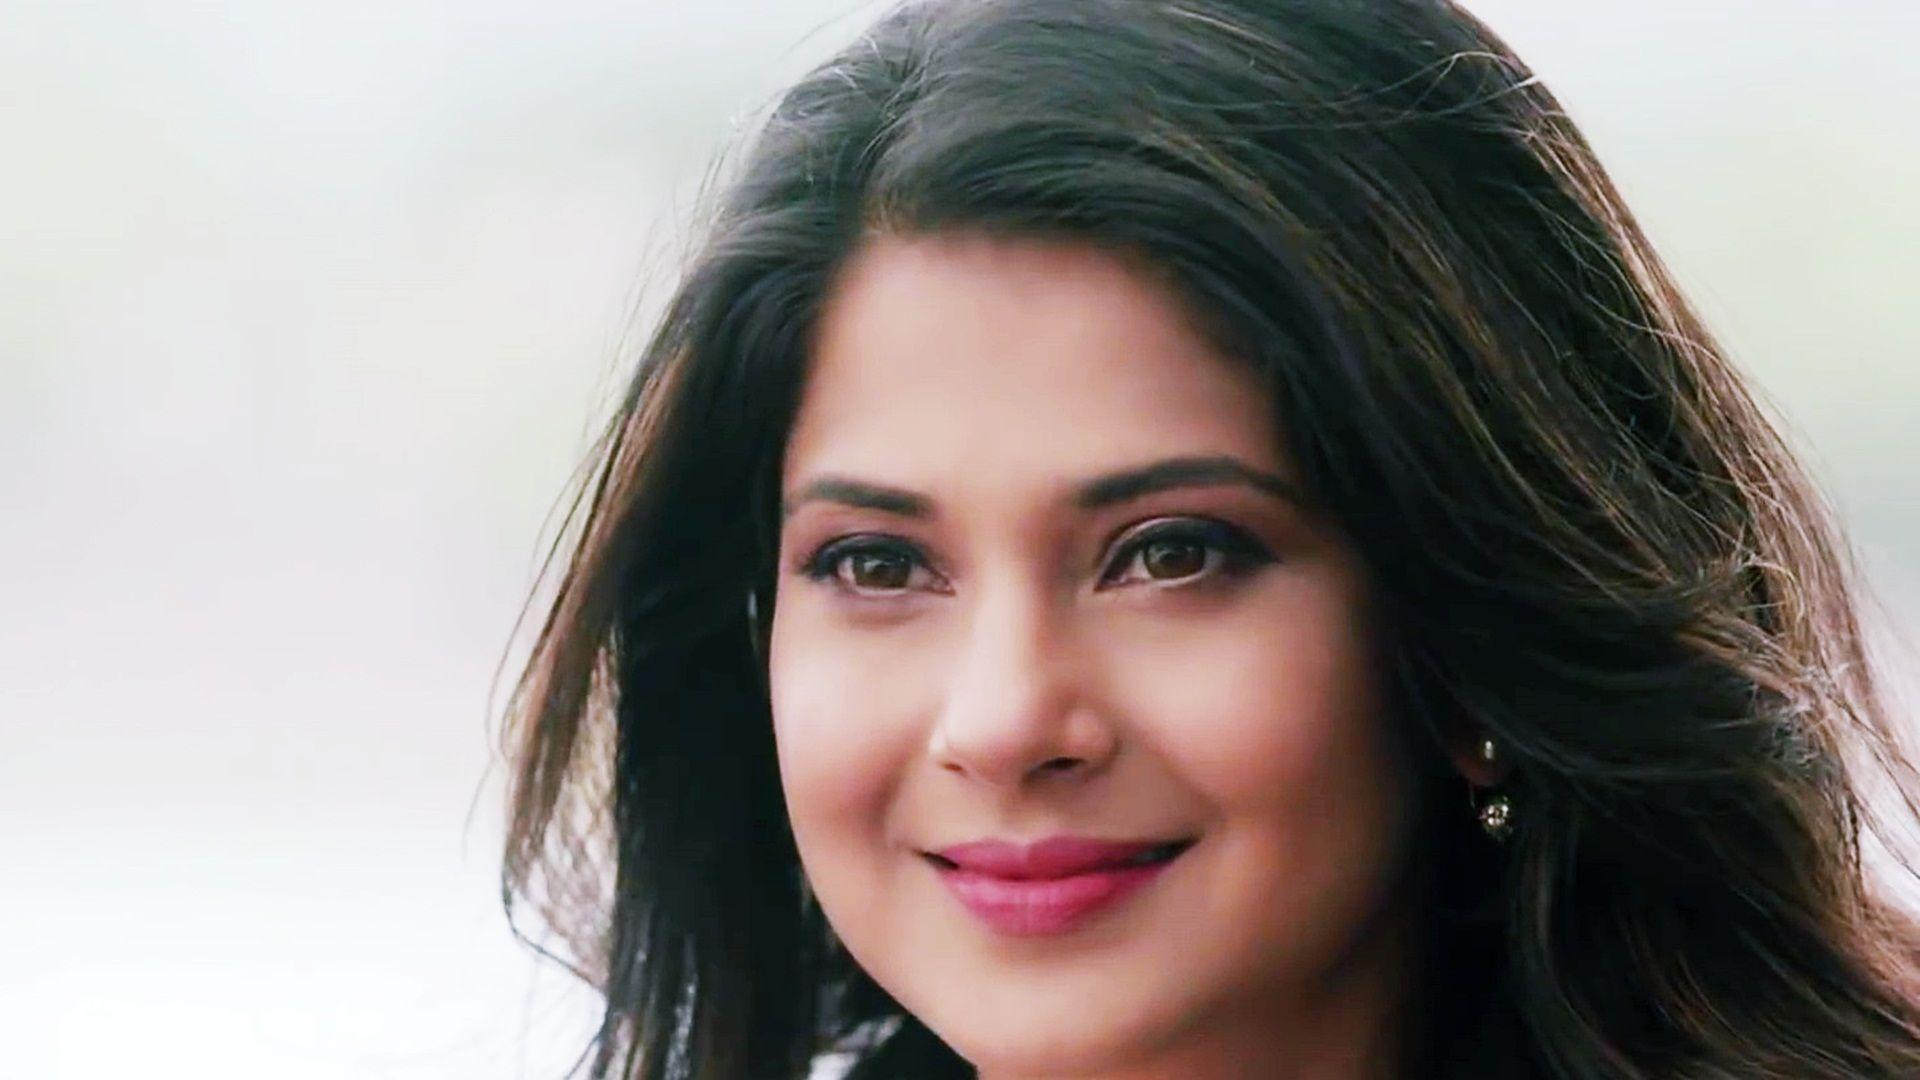 Jennifer Winget Wallpapers Wallpaper Cave We r making a whatsapp group for behad serial fan club bcoz we r unable to post updates on the page. jennifer winget wallpapers wallpaper cave